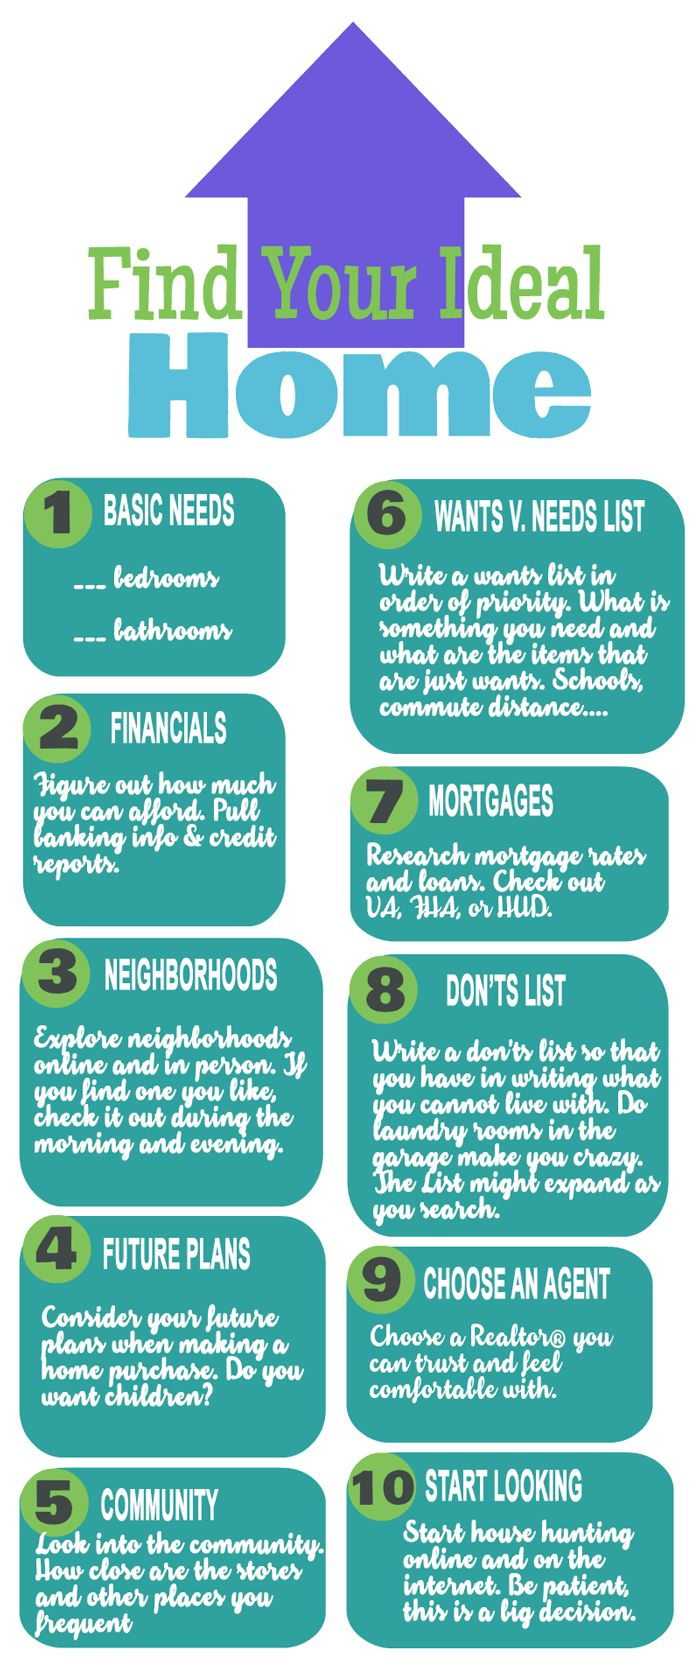 How to pick your ideal home – find a Realtor®, research mortgages, write a don'ts list, write a needs versus wants list, explore communities and more @Realtors  AD #getrealtor